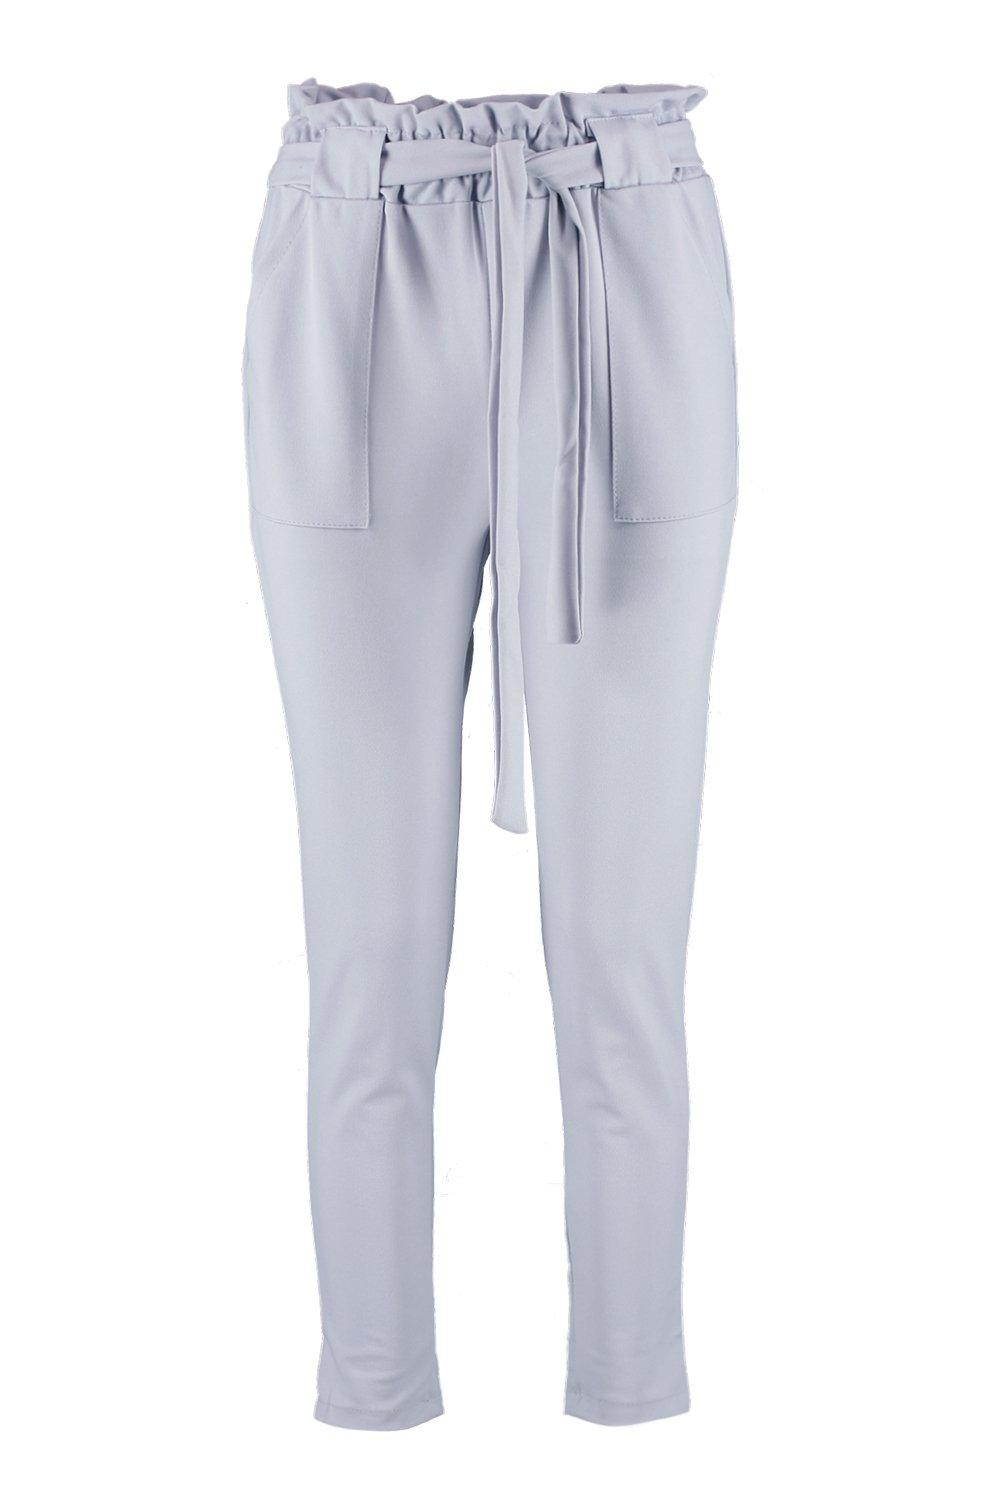 Waist Belted Paperbag Waist grey Paperbag Paperbag Belted Trouser grey Trouser qRF7wS